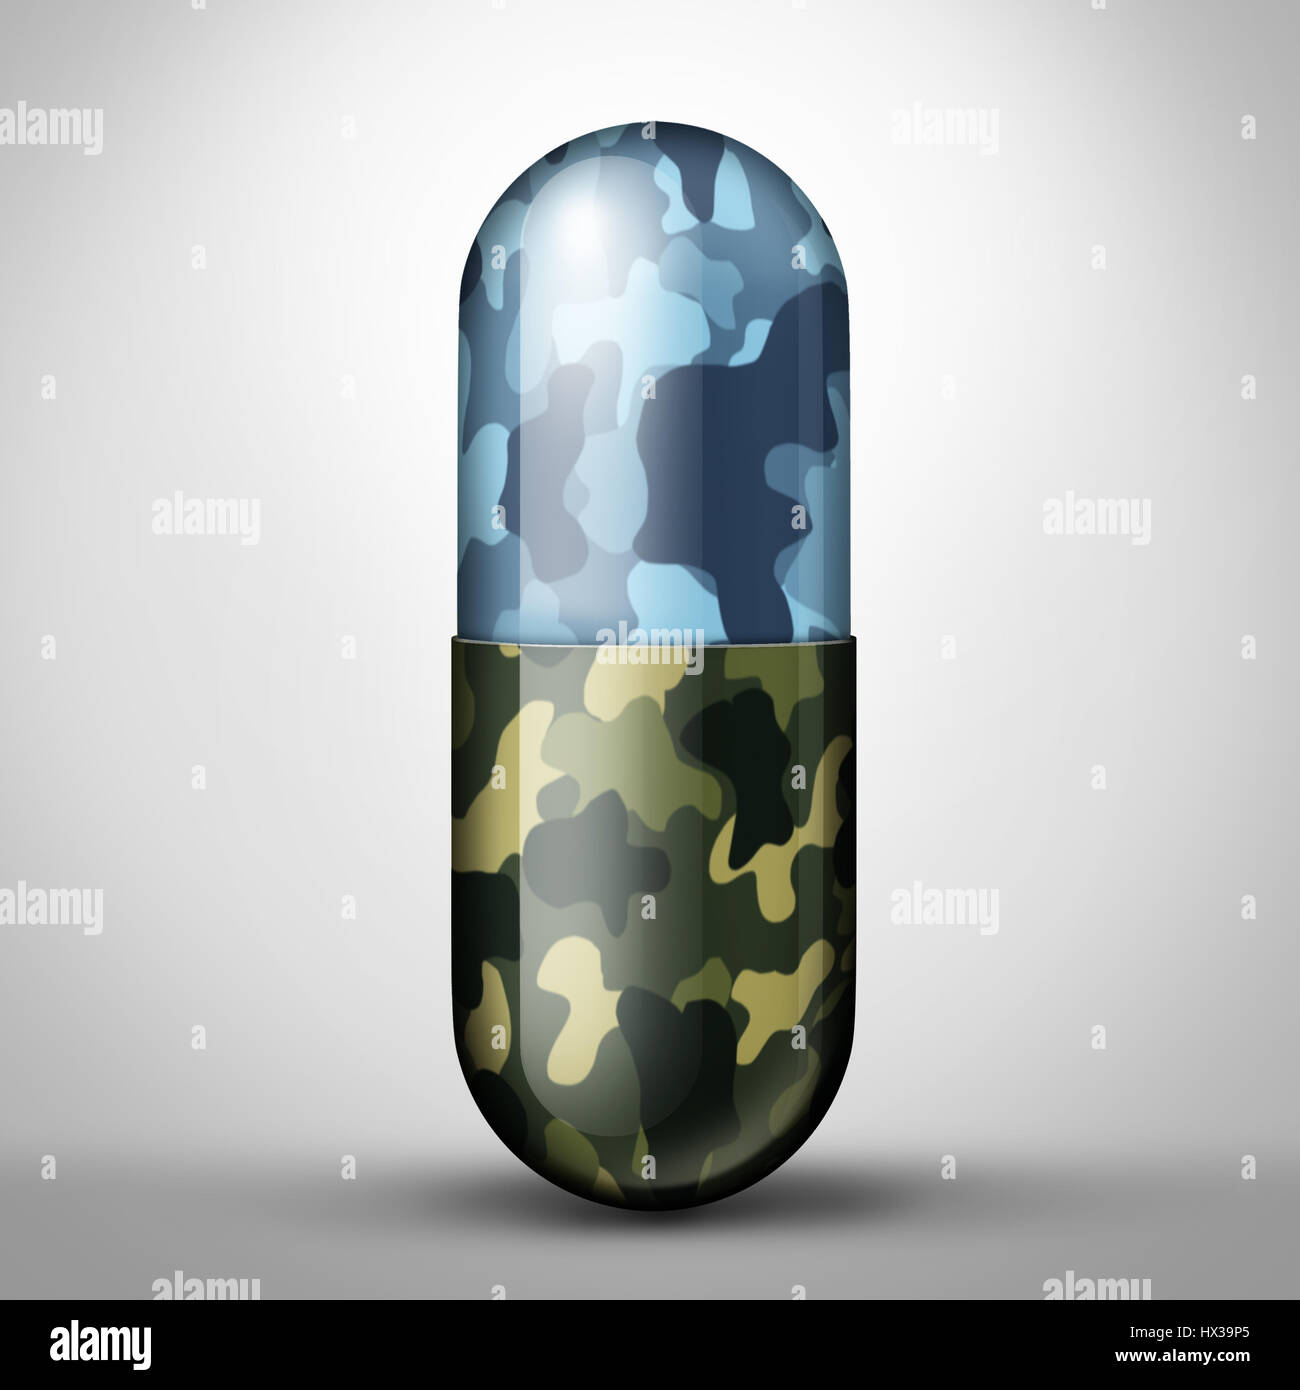 Veteran Health military medicine for soldier medical care as ptsd illness as a pill with army navy or marine camouflage - Stock Image